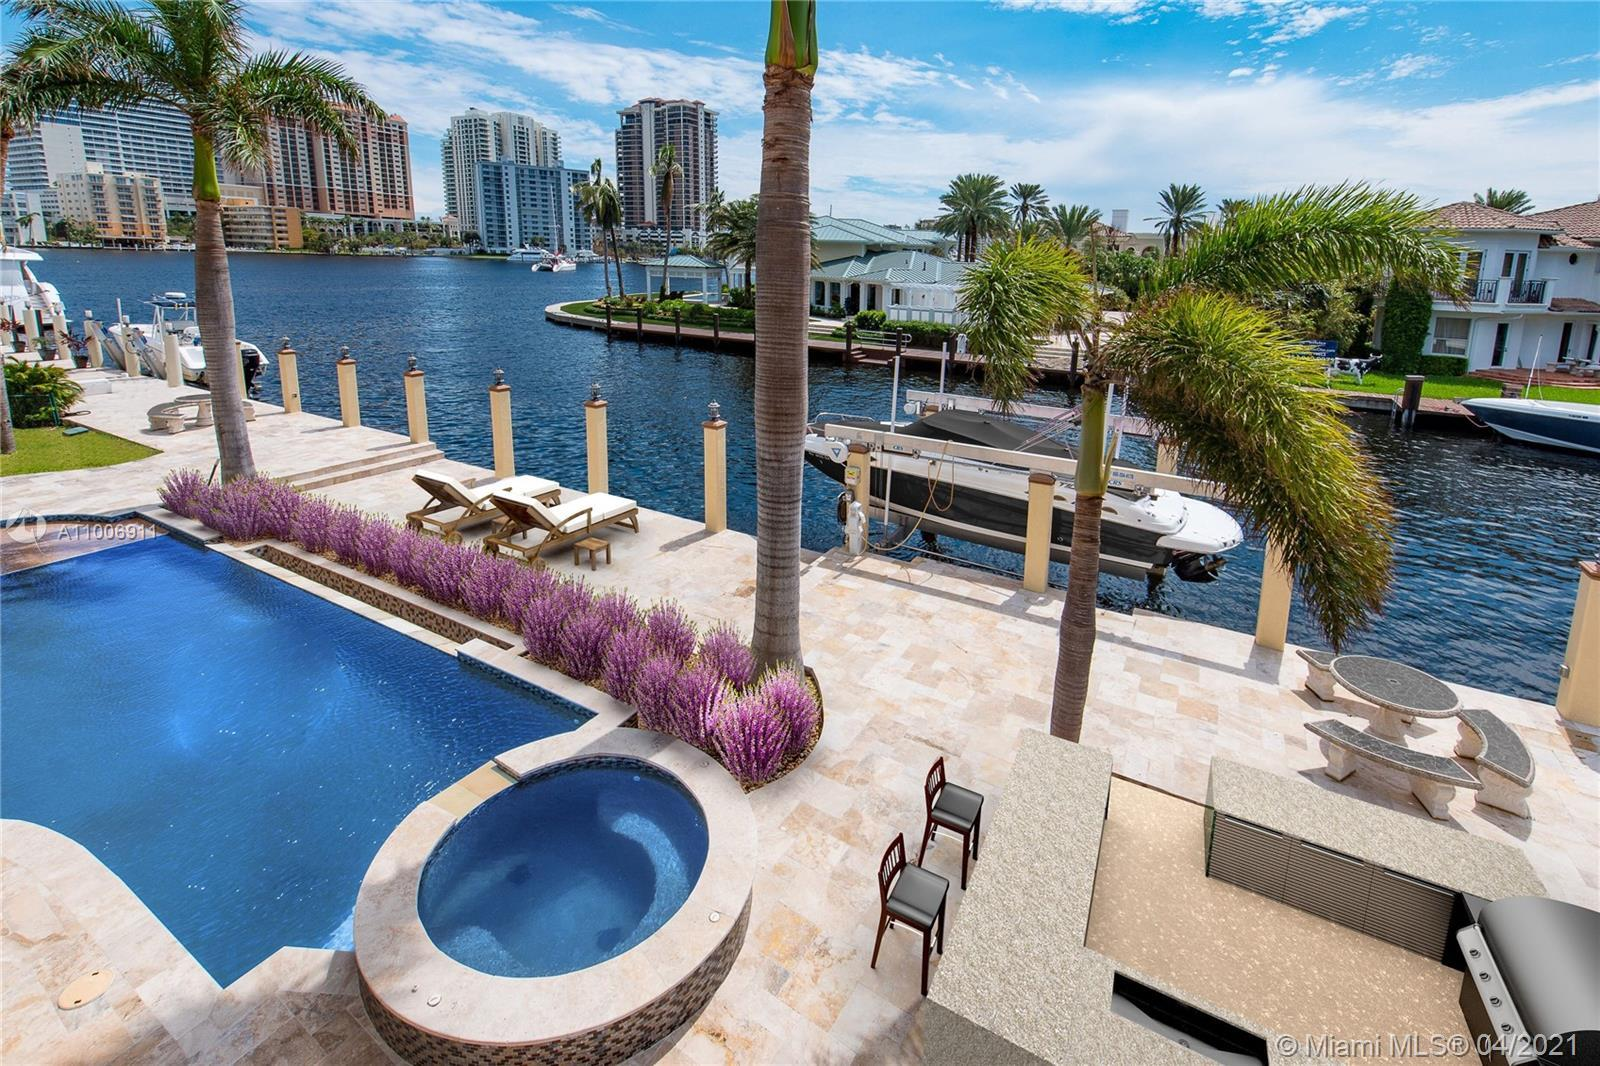 LAS OLAS LIVING AT IT'S BEST !!! MAGNIFICIENT waterfront estate extensively renovated both inside an